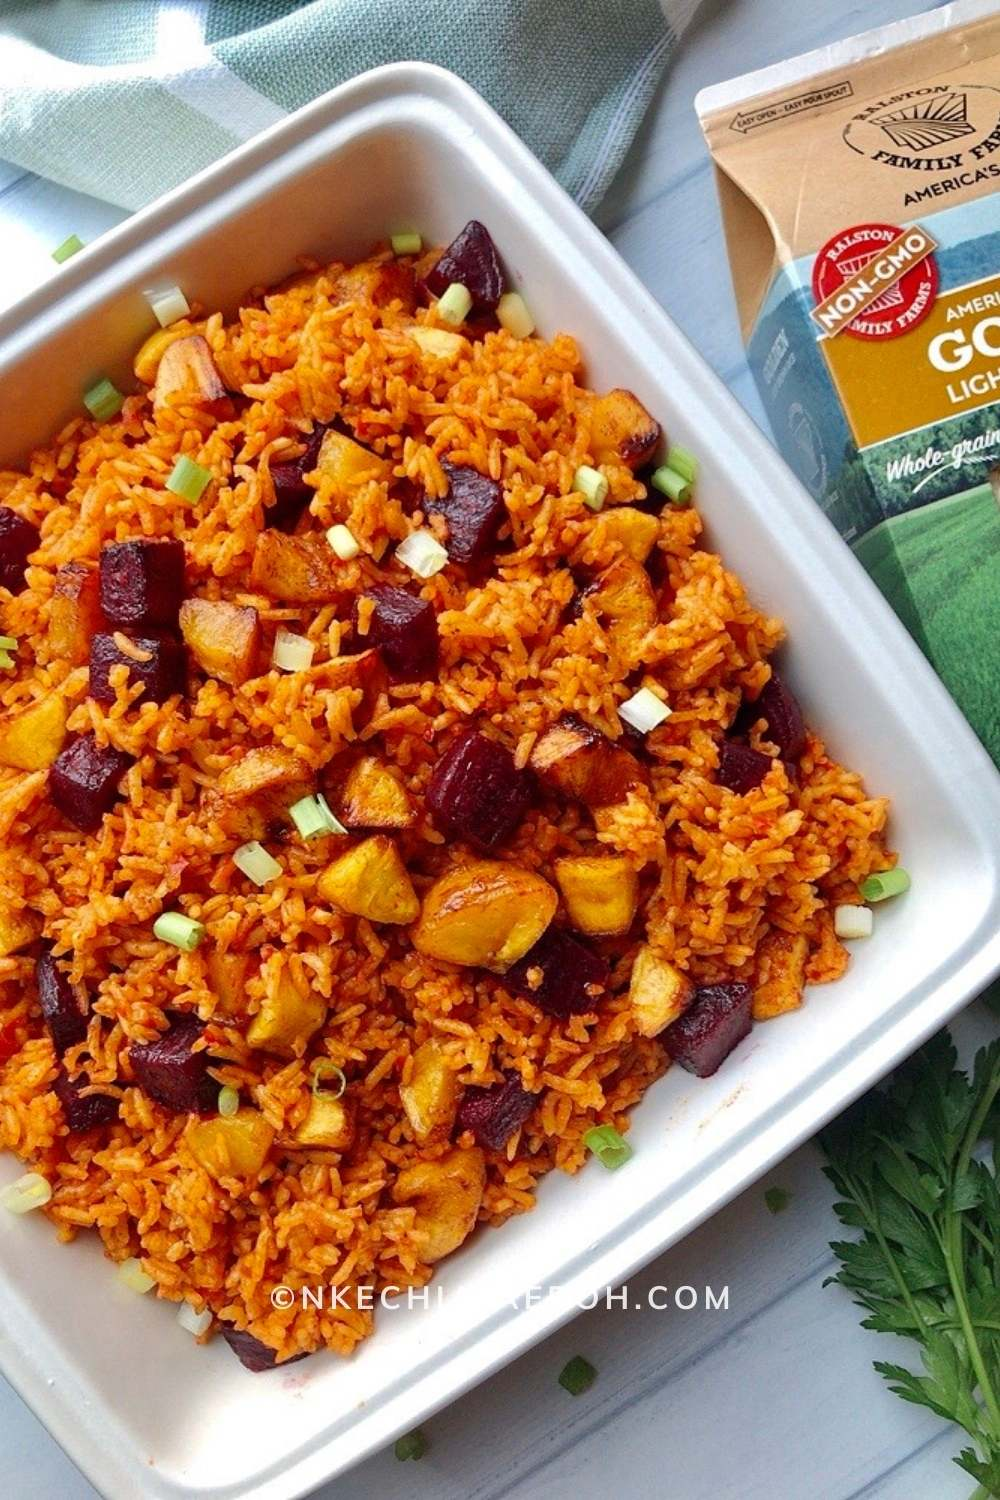 Gluten-free, dairy-free, and vegan brown rice recipe for the side dish!